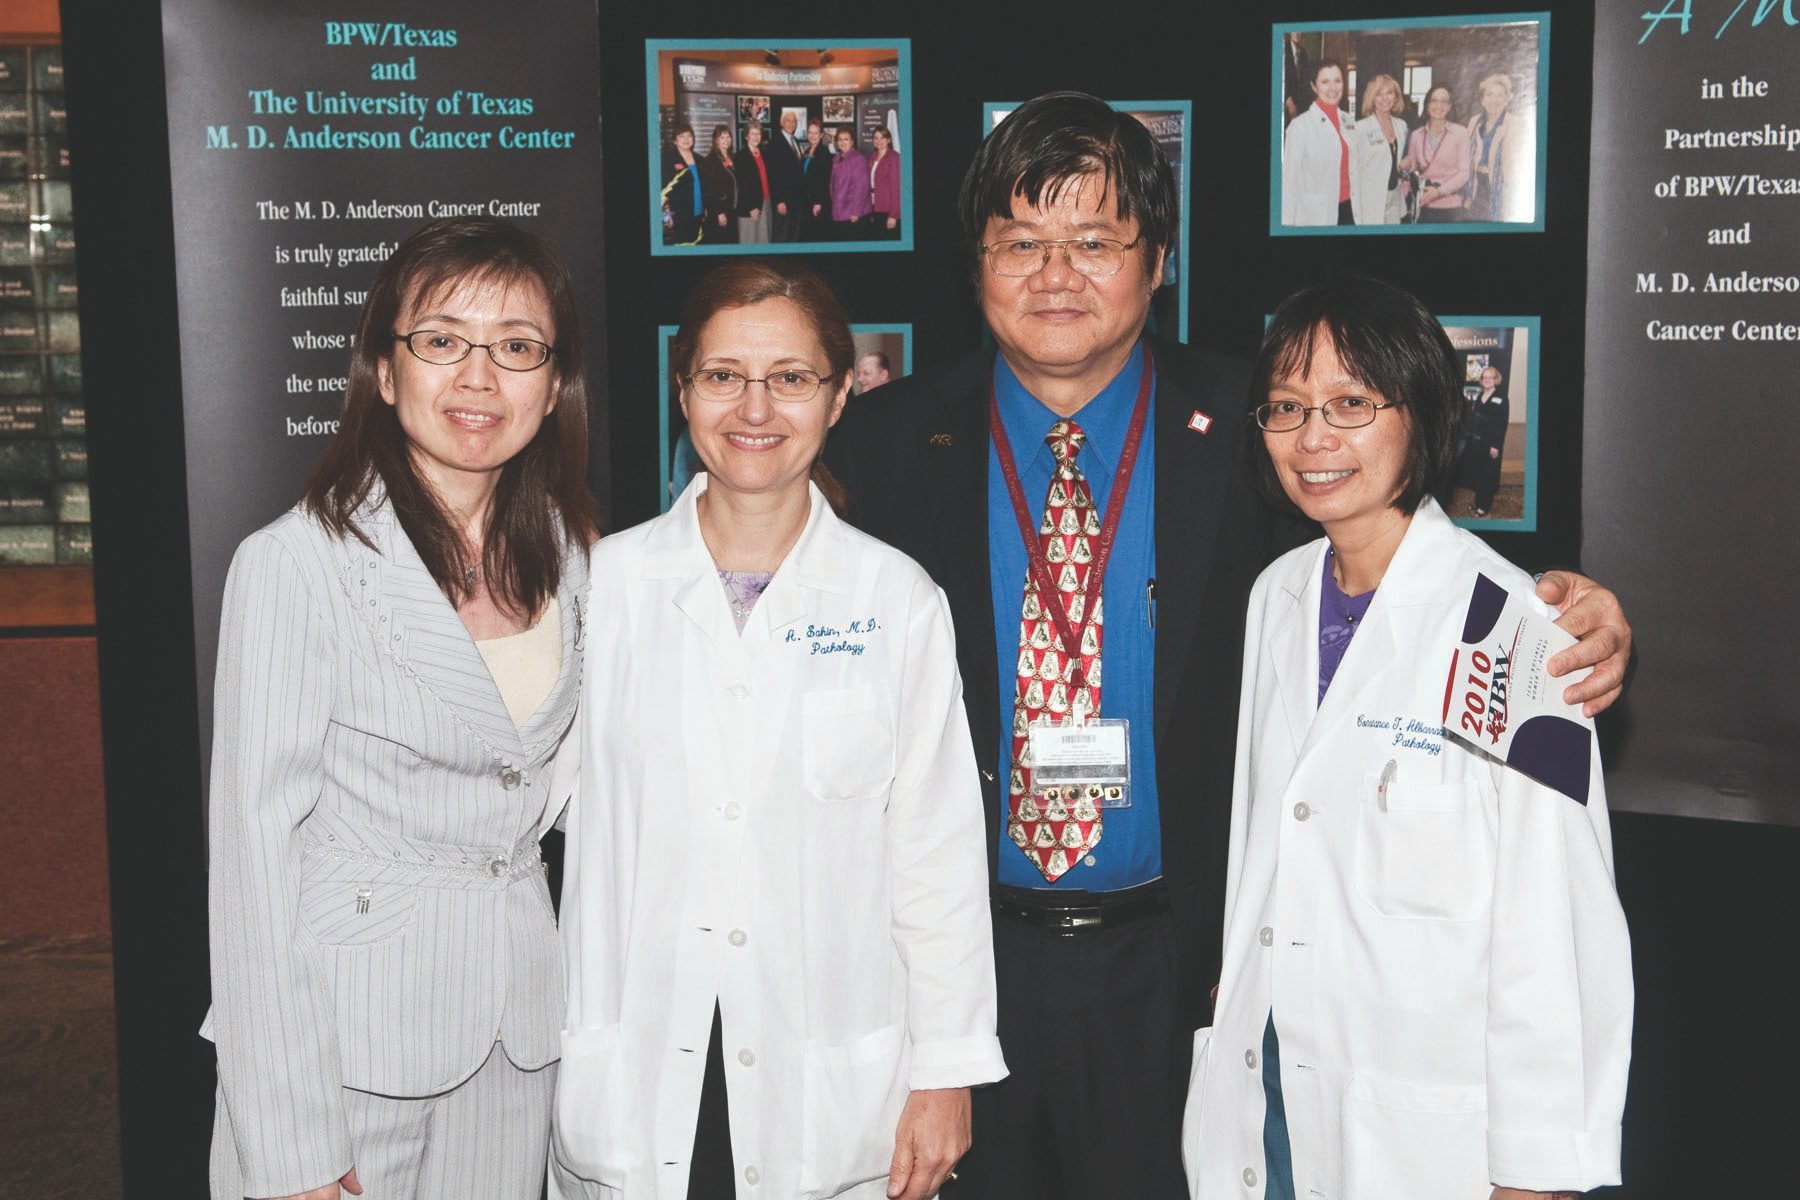 From left, Dihua Yu, M.D., Ph.D., professor of molecular and cellular oncology, pauses after receiving this year's TBW Award with Aysegul A. Sahin, M.D., professor pathology, Mien-Chie Hung, Ph.D., chair of the Department of Molecular and Cellular Biology; and Constance Albarracin, M.D., associate professor of pathology. Photo by Barry Smith.